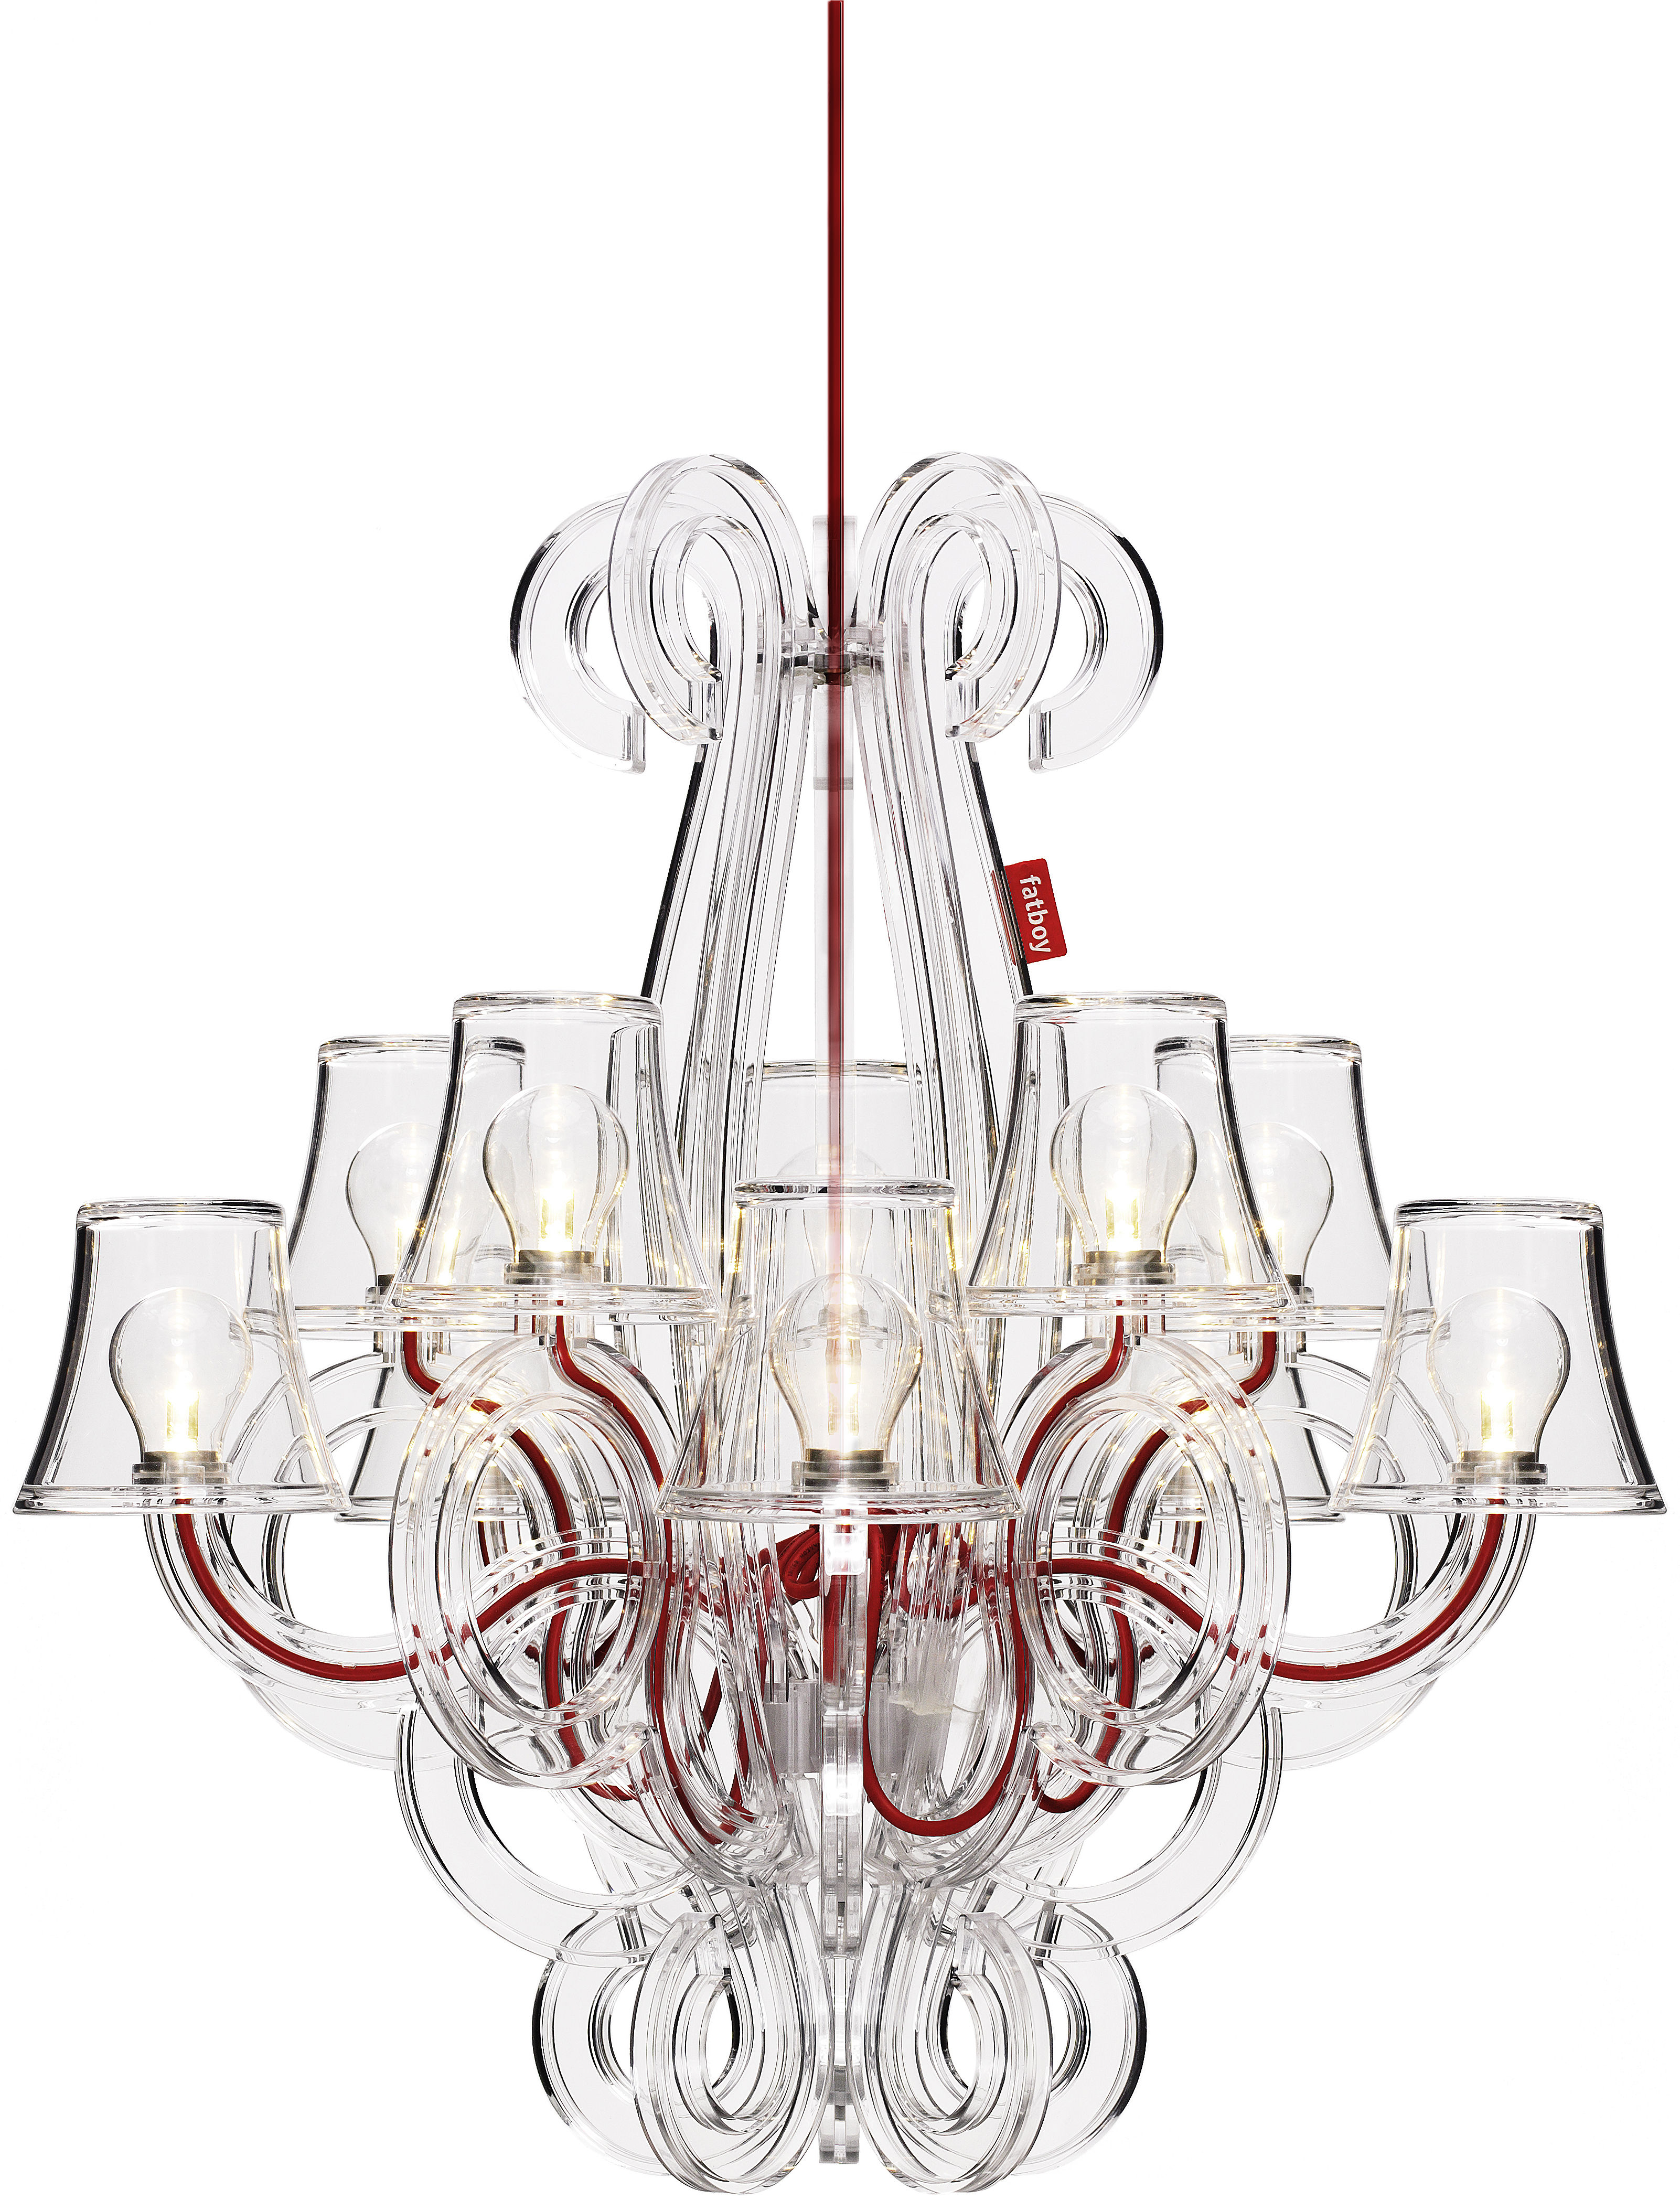 RockCoco Pendant Chandelier Transparent Red by Fatboy